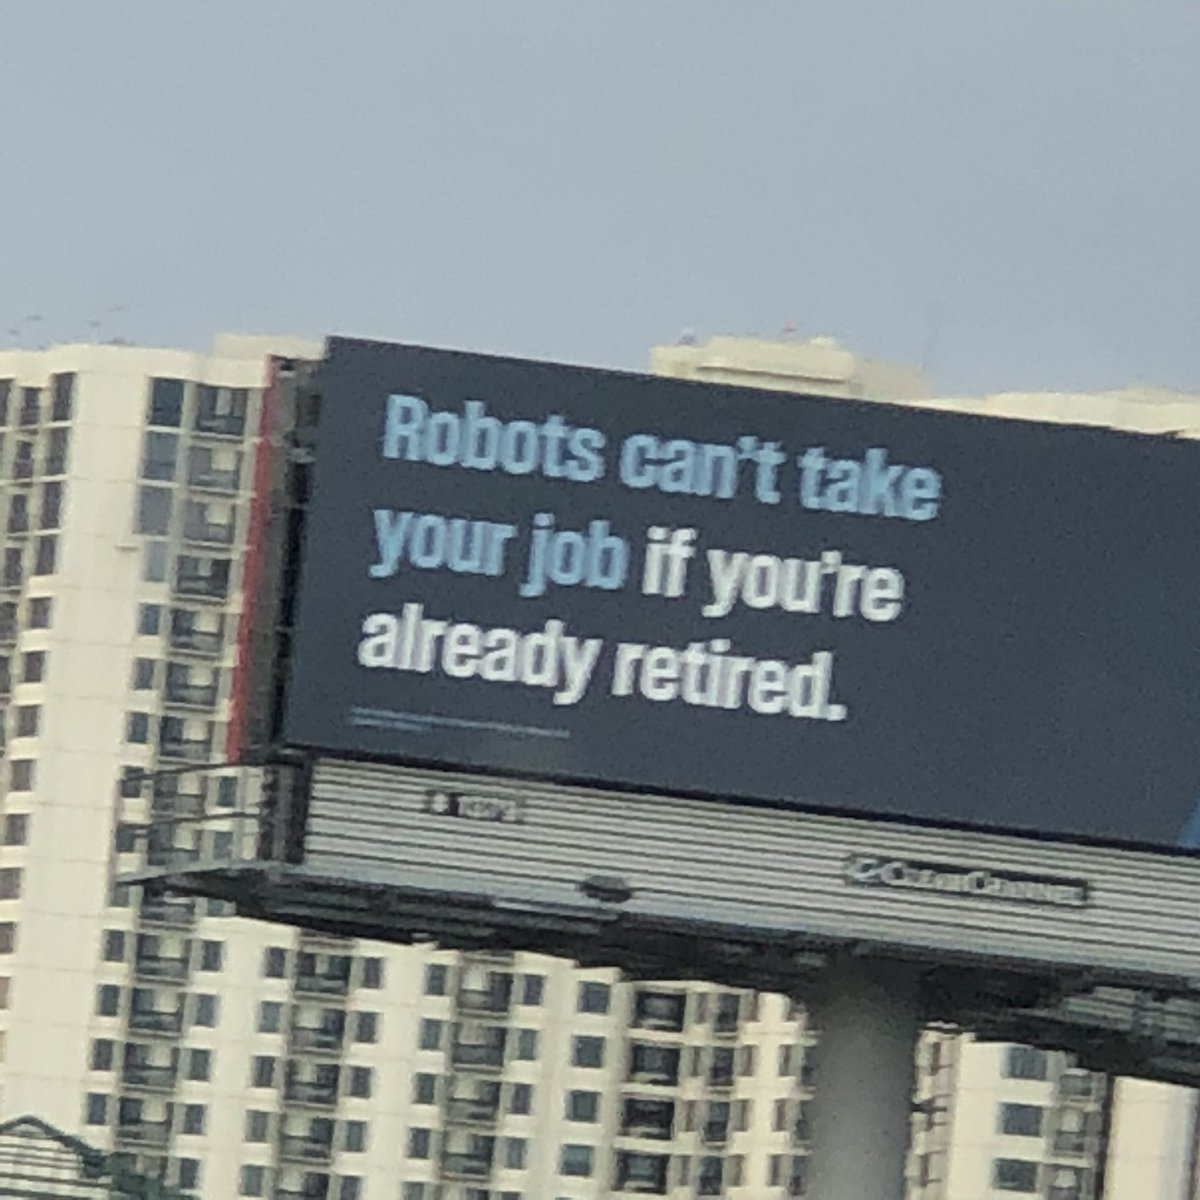 Robots can't take your job if you've already been murdered by robots. https://t.co/RBMhbeRCWX